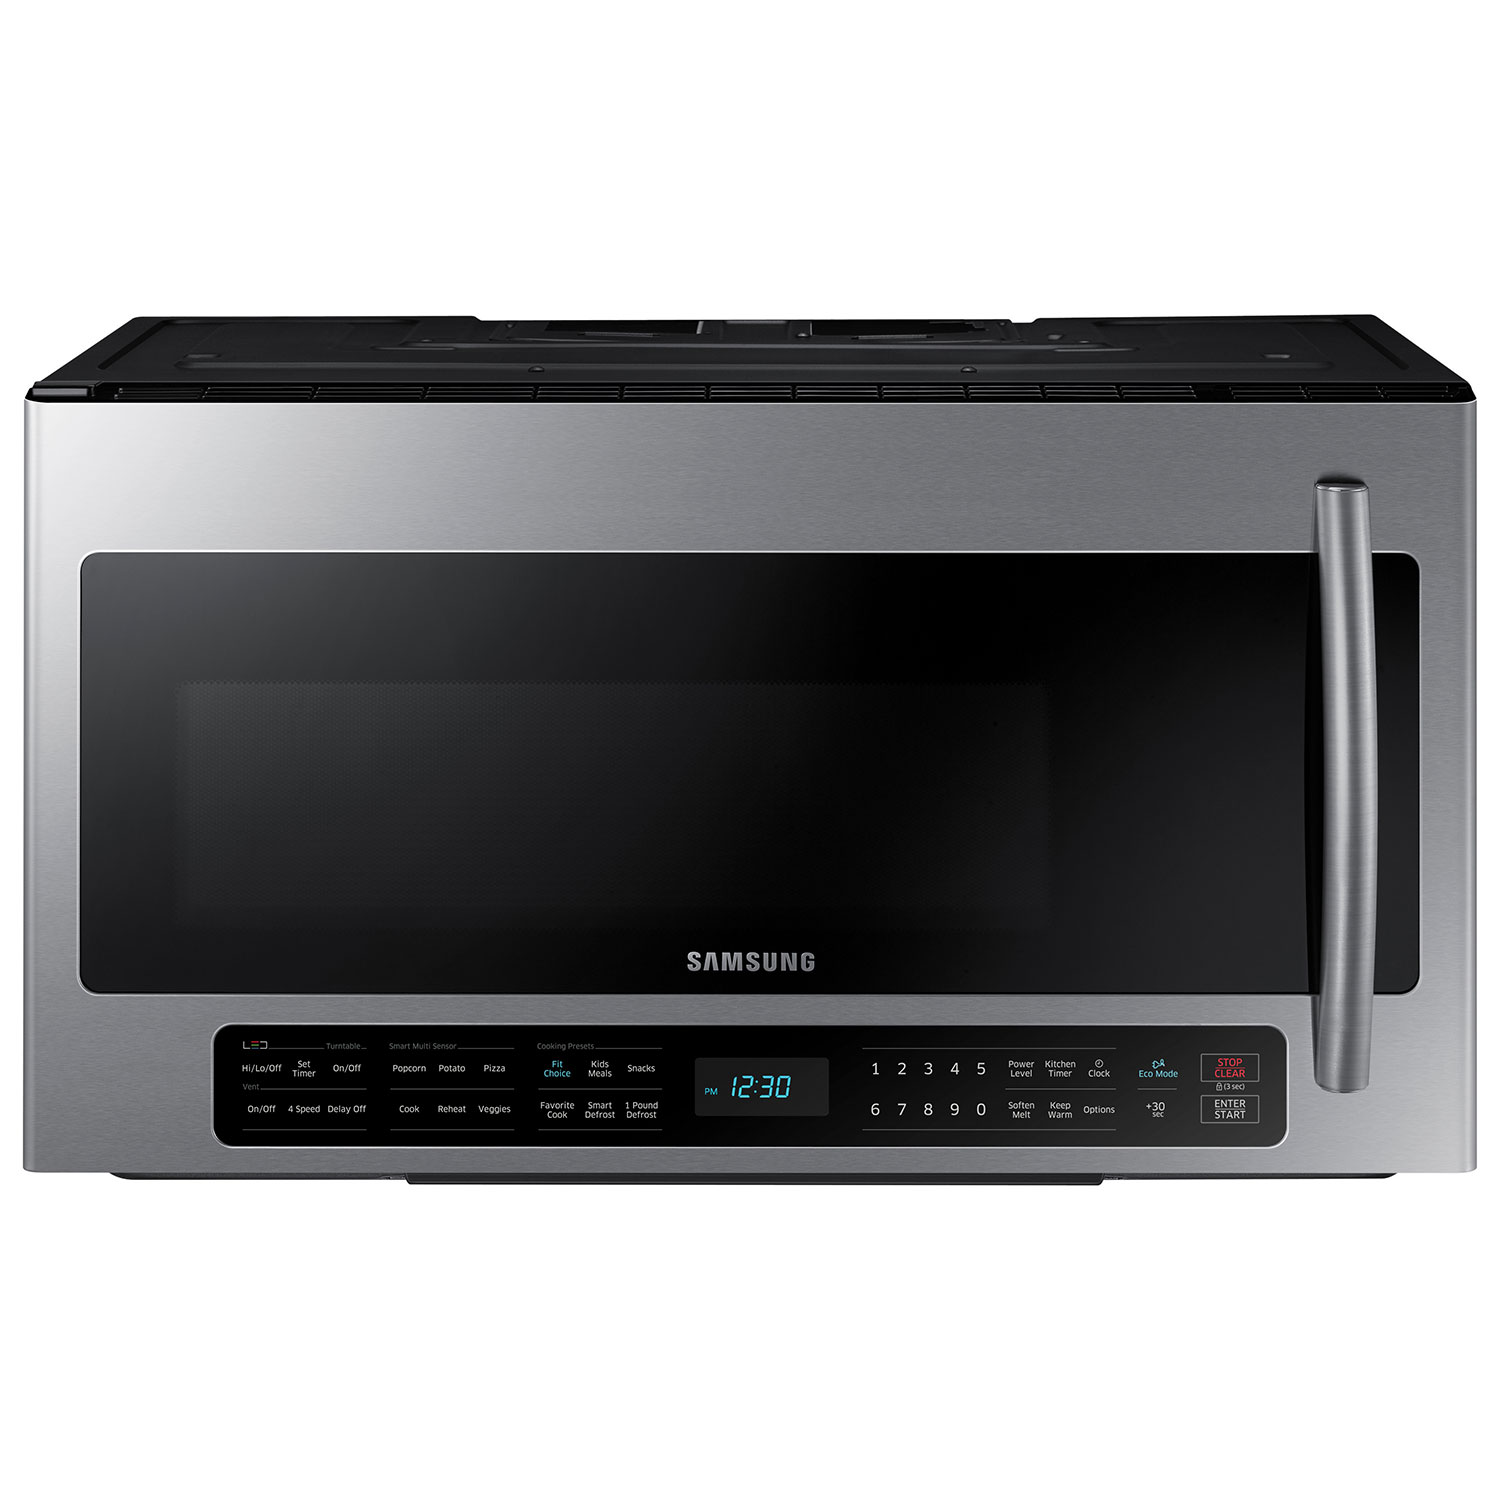 Home kitchen appliances microwaves over the range microwaves - Samsung Over The Range Microwave 2 1 Cu Ft Stainless Steel Over The Range Microwaves Best Buy Canada